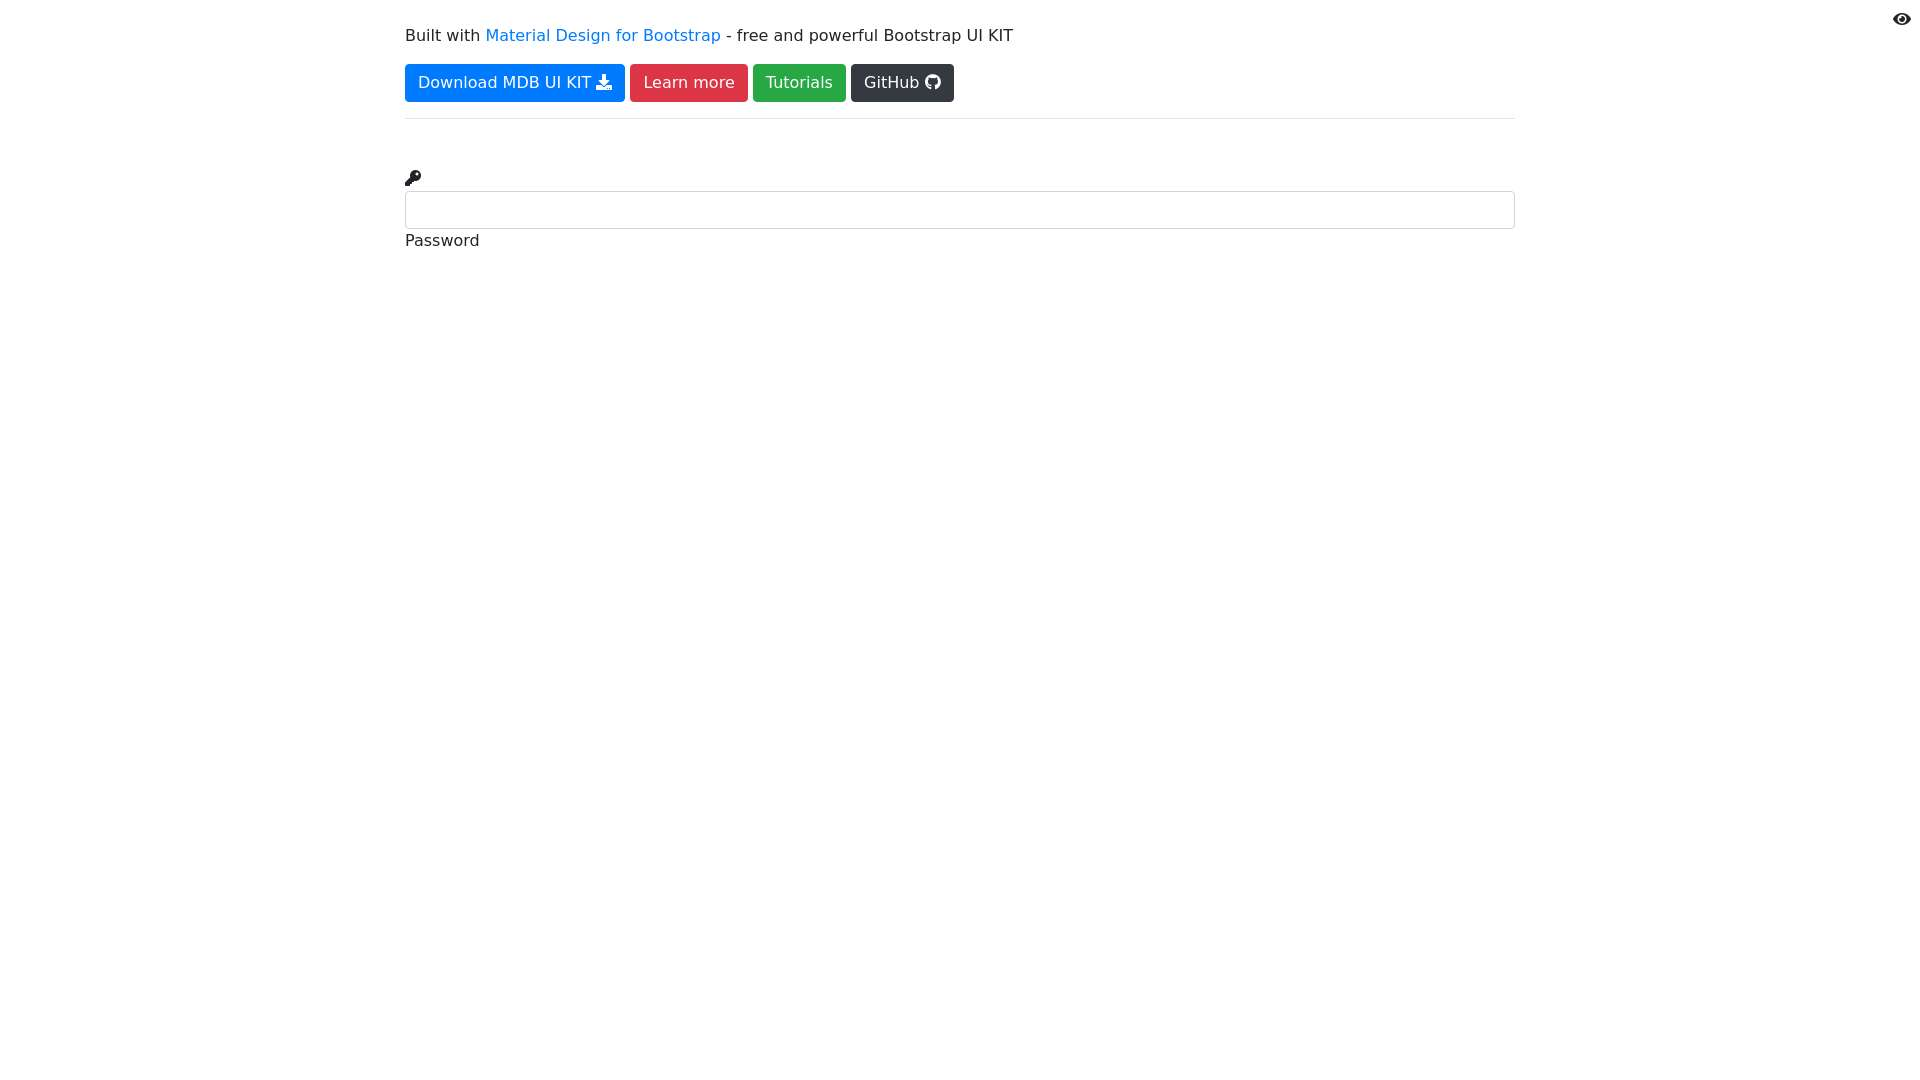 Toggle password visibility - Material Design for Bootstrap